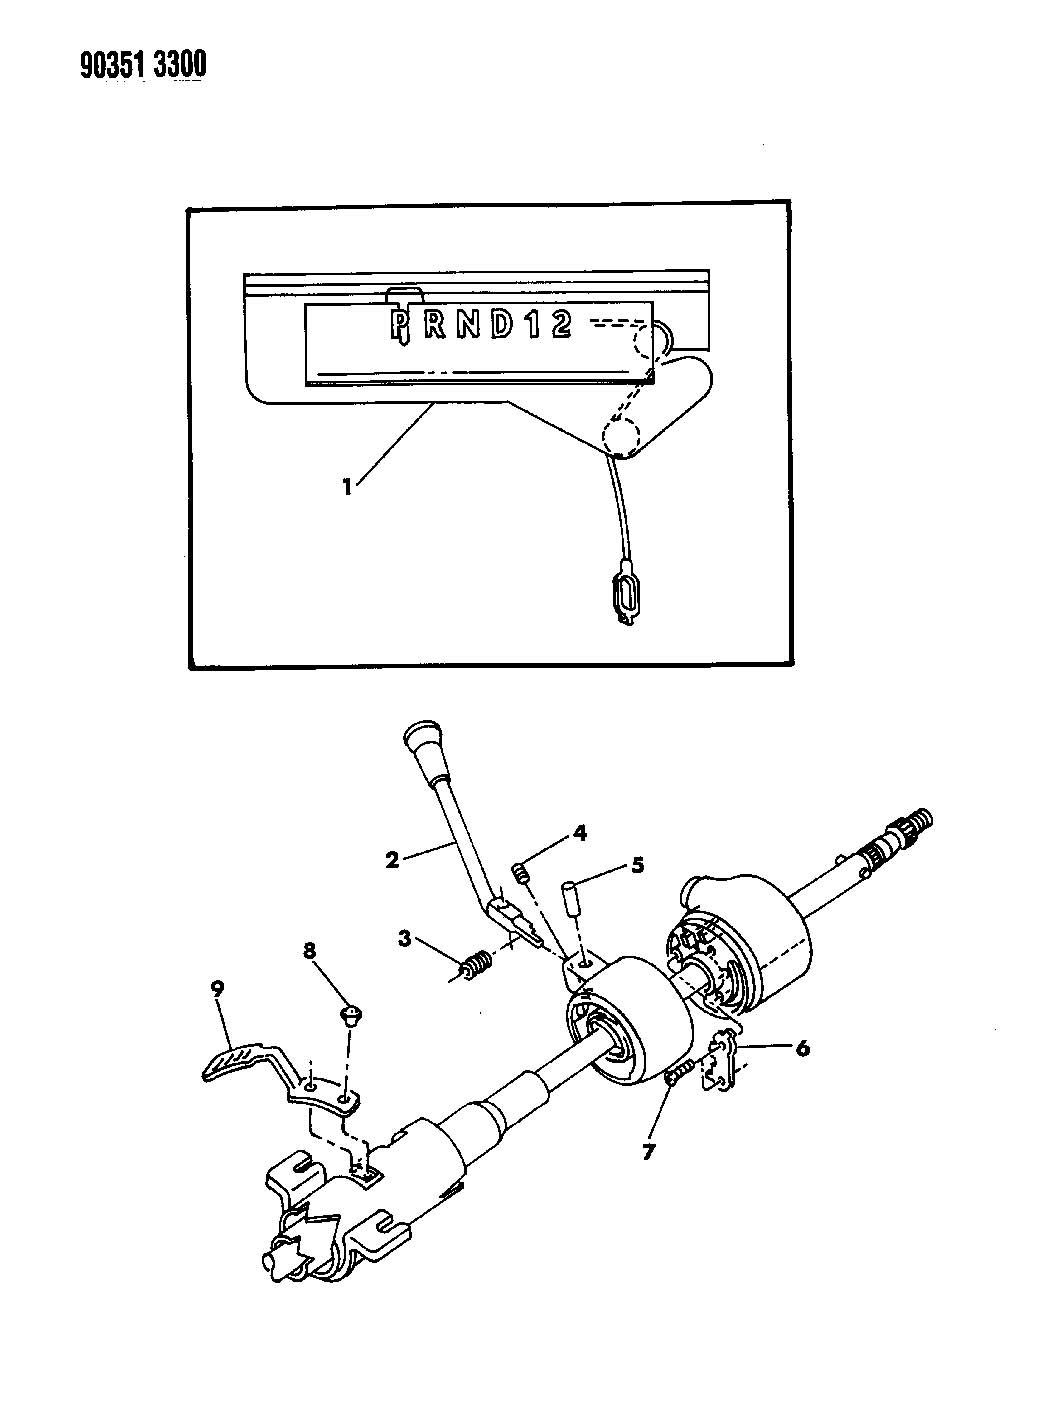 Service manual [Changeing Gear Shift Assembly 1993 Dodge